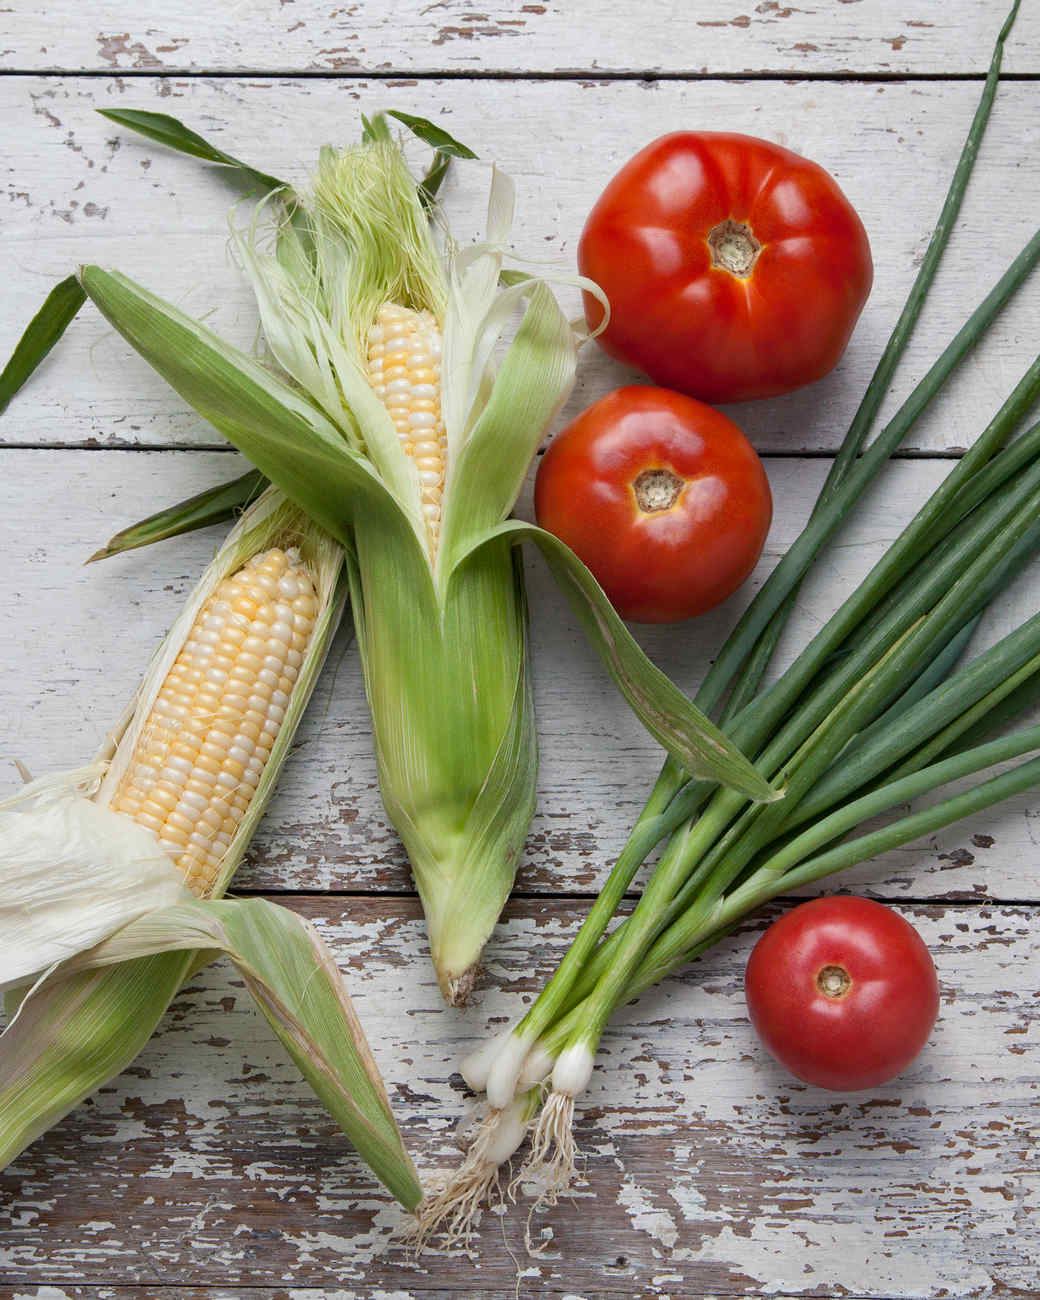 tomatoes-corn-scallions-pantry-0029-d112400.jpg